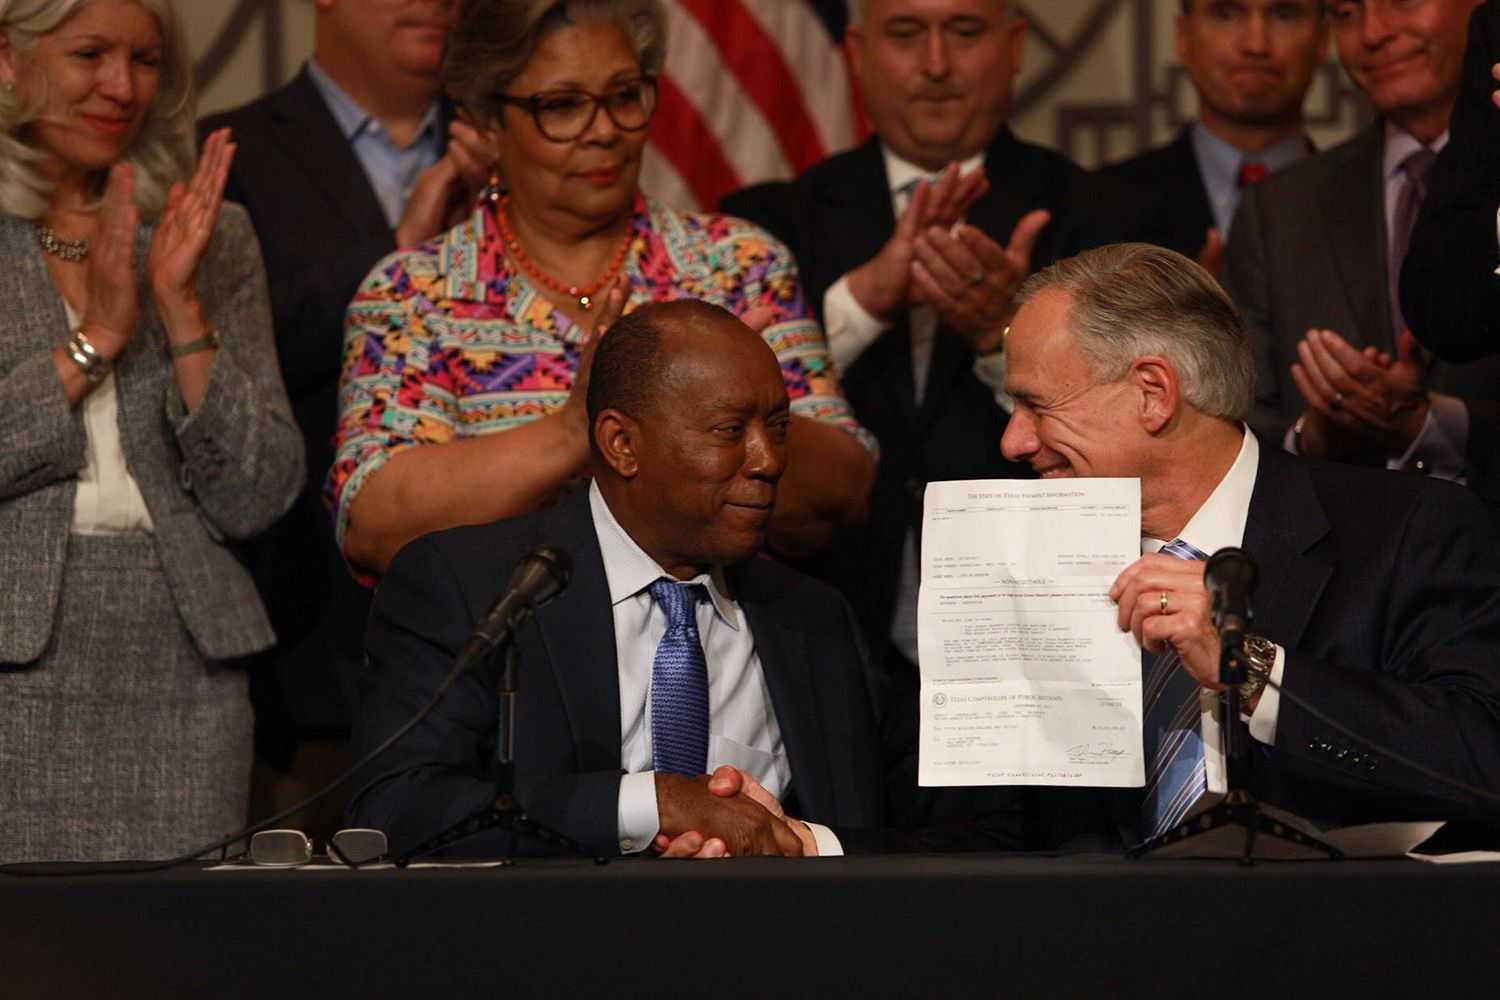 Gov. Greg Abbott presents Houston Mayor Sylvester Turner with a $50 million check for Hurricane Harvey relief during a news conference in Houston on Friday, Sept. 29, 2017.